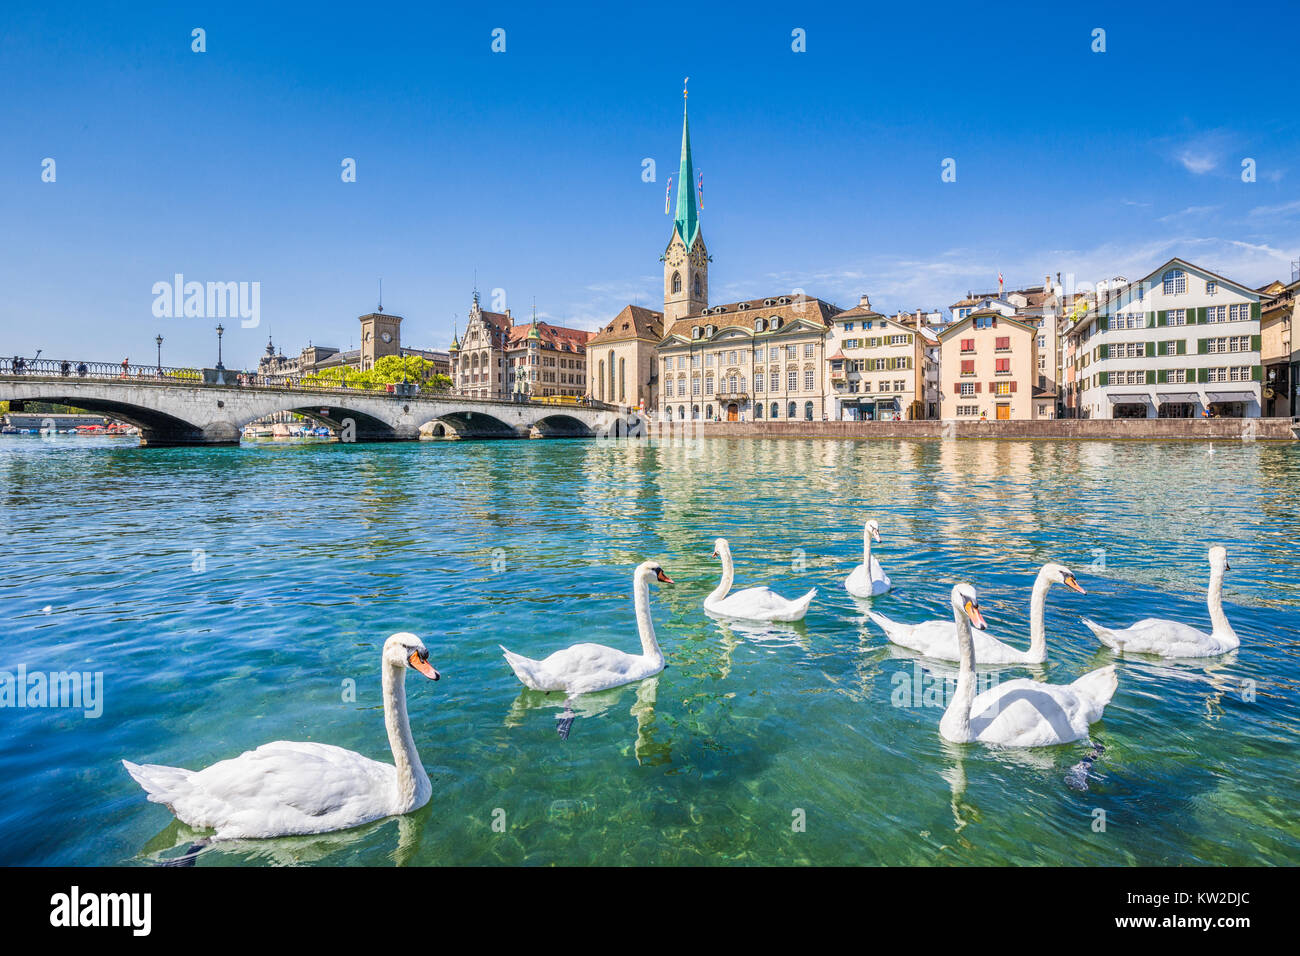 Beautiful view of the historic city center of Zurich with famous Fraumunster Church and swans on river Limmat on - Stock Image